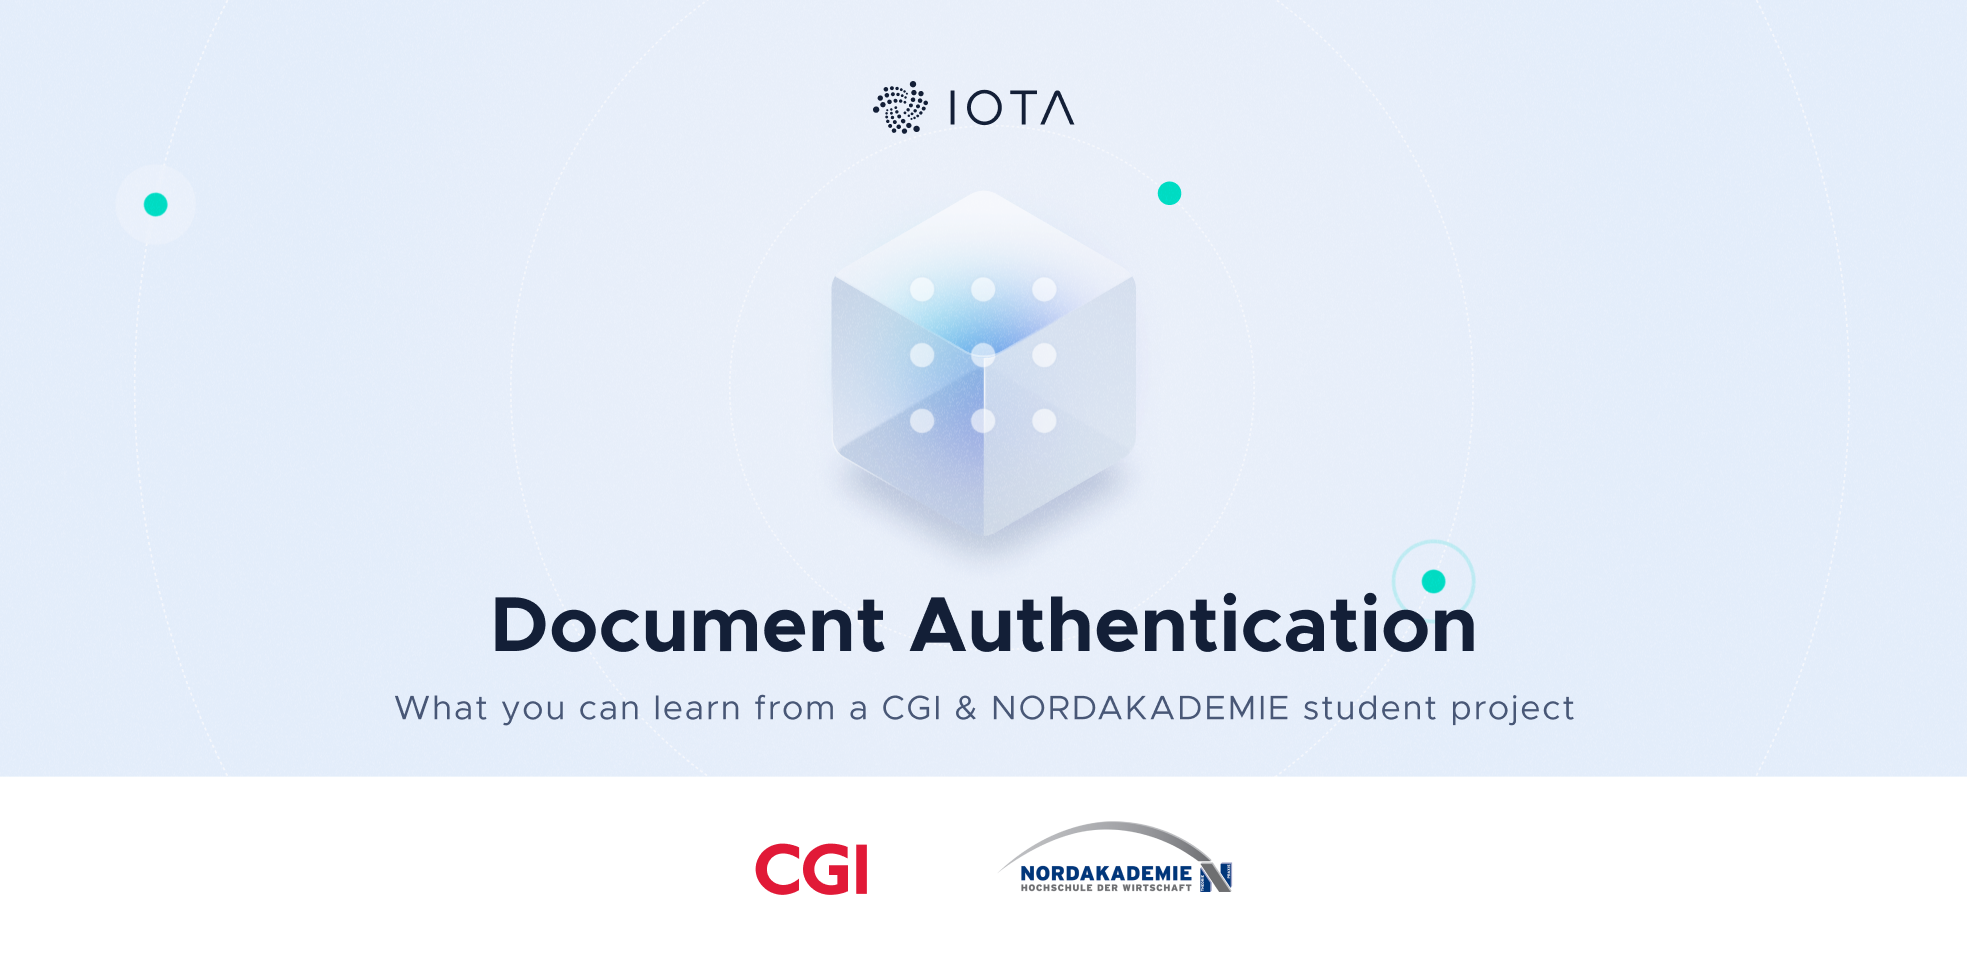 Enabling document authenticity through DLT - a project by CGI and NORDAKADEMIE